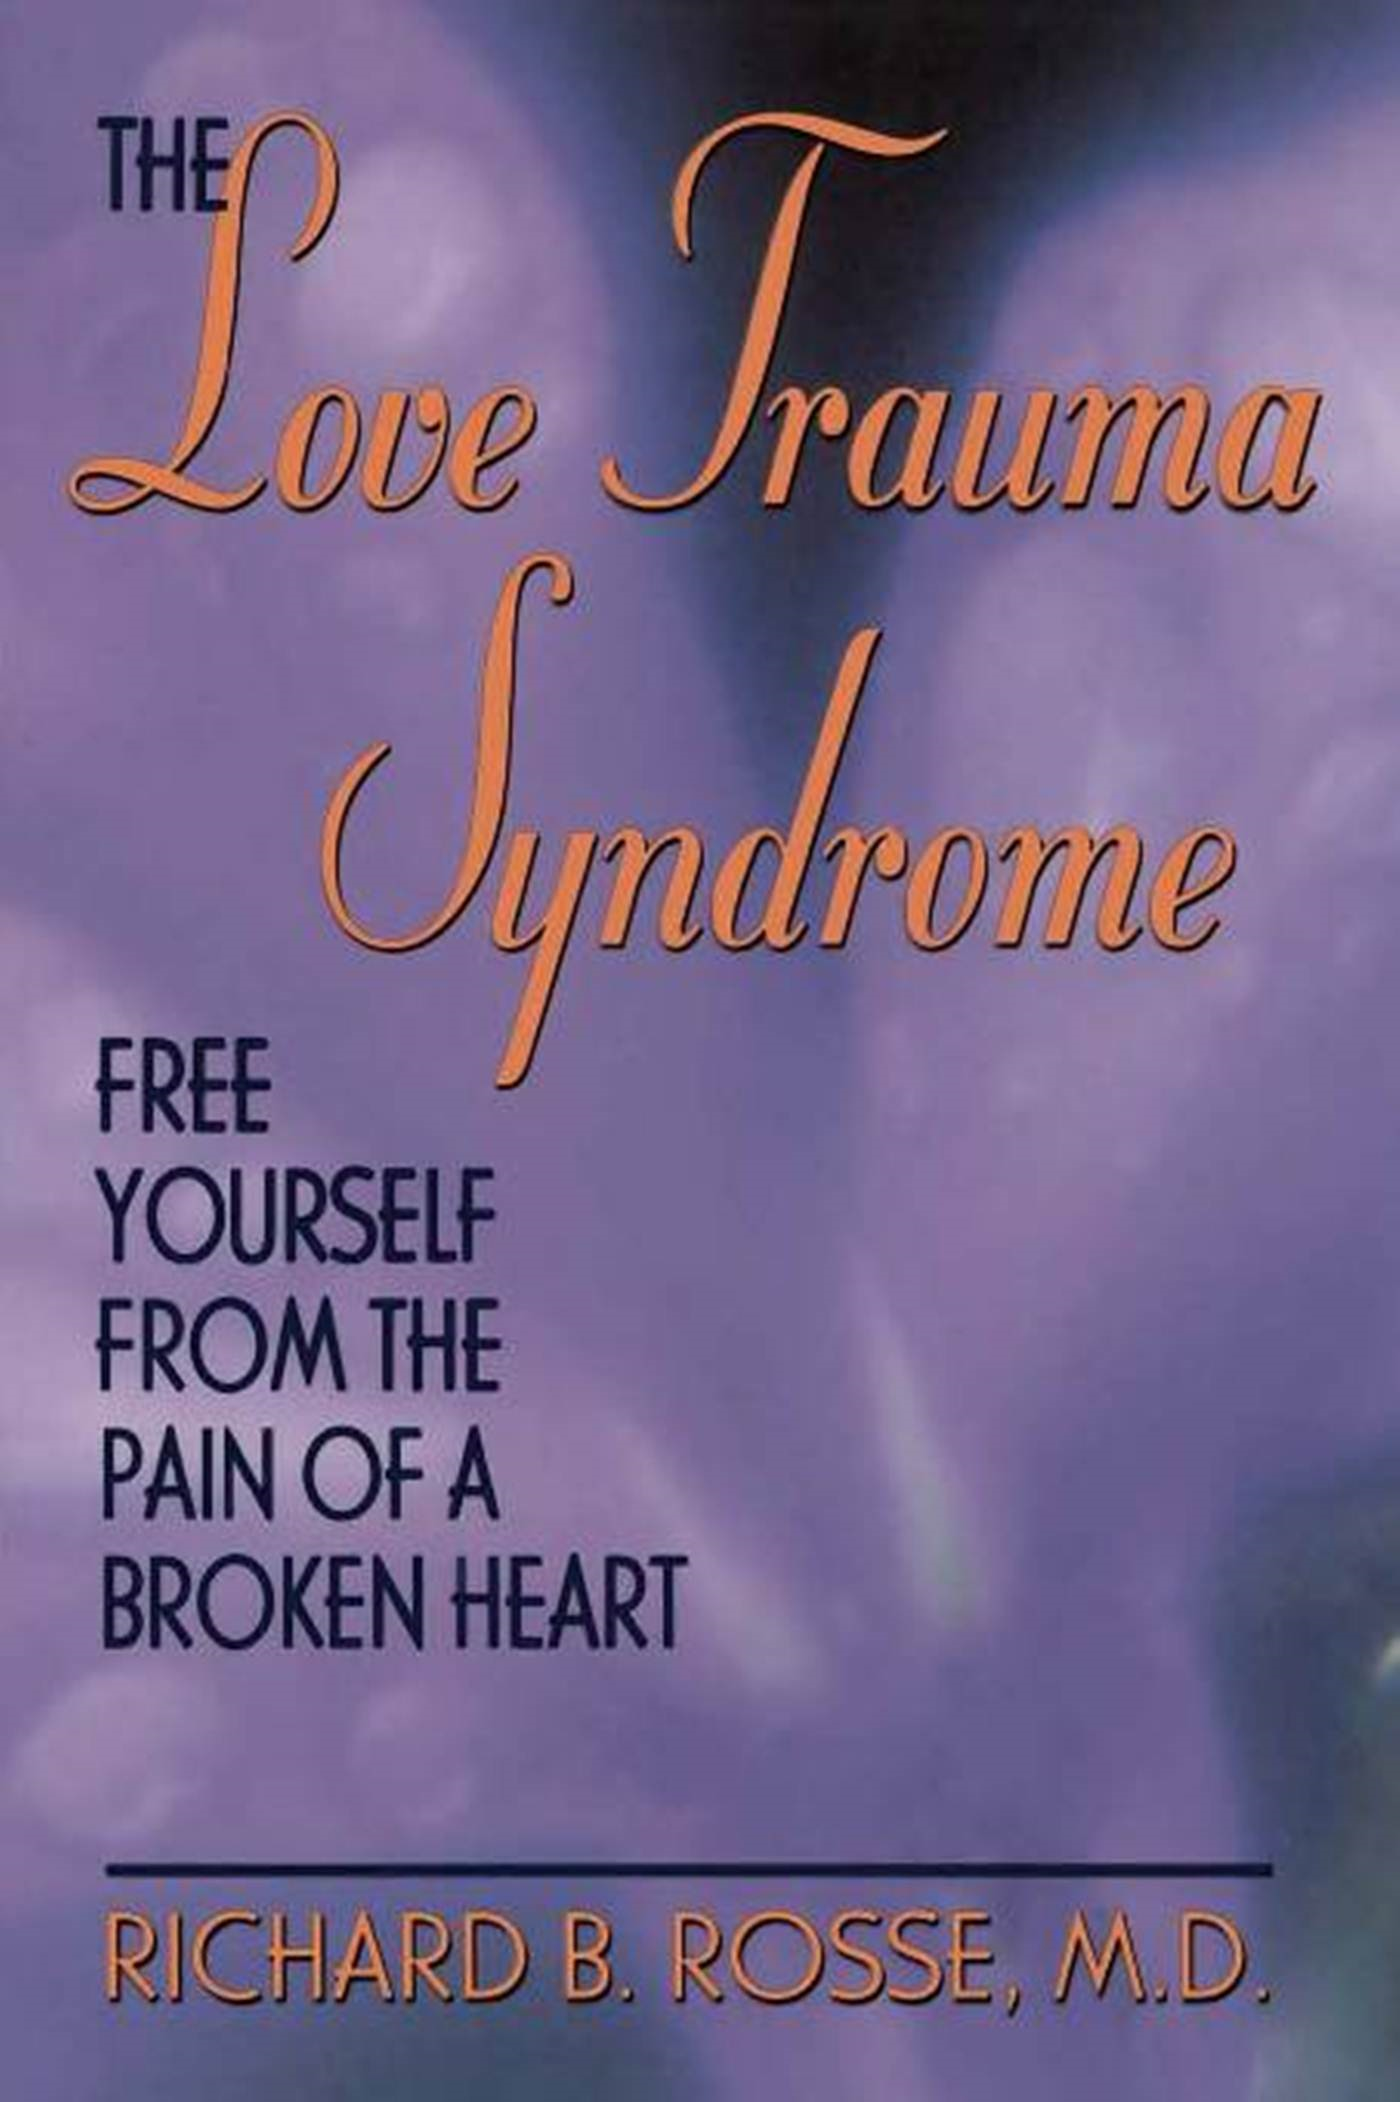 The Love Trauma Syndrome: Free Yourself From The Pain Of A Broken Heart